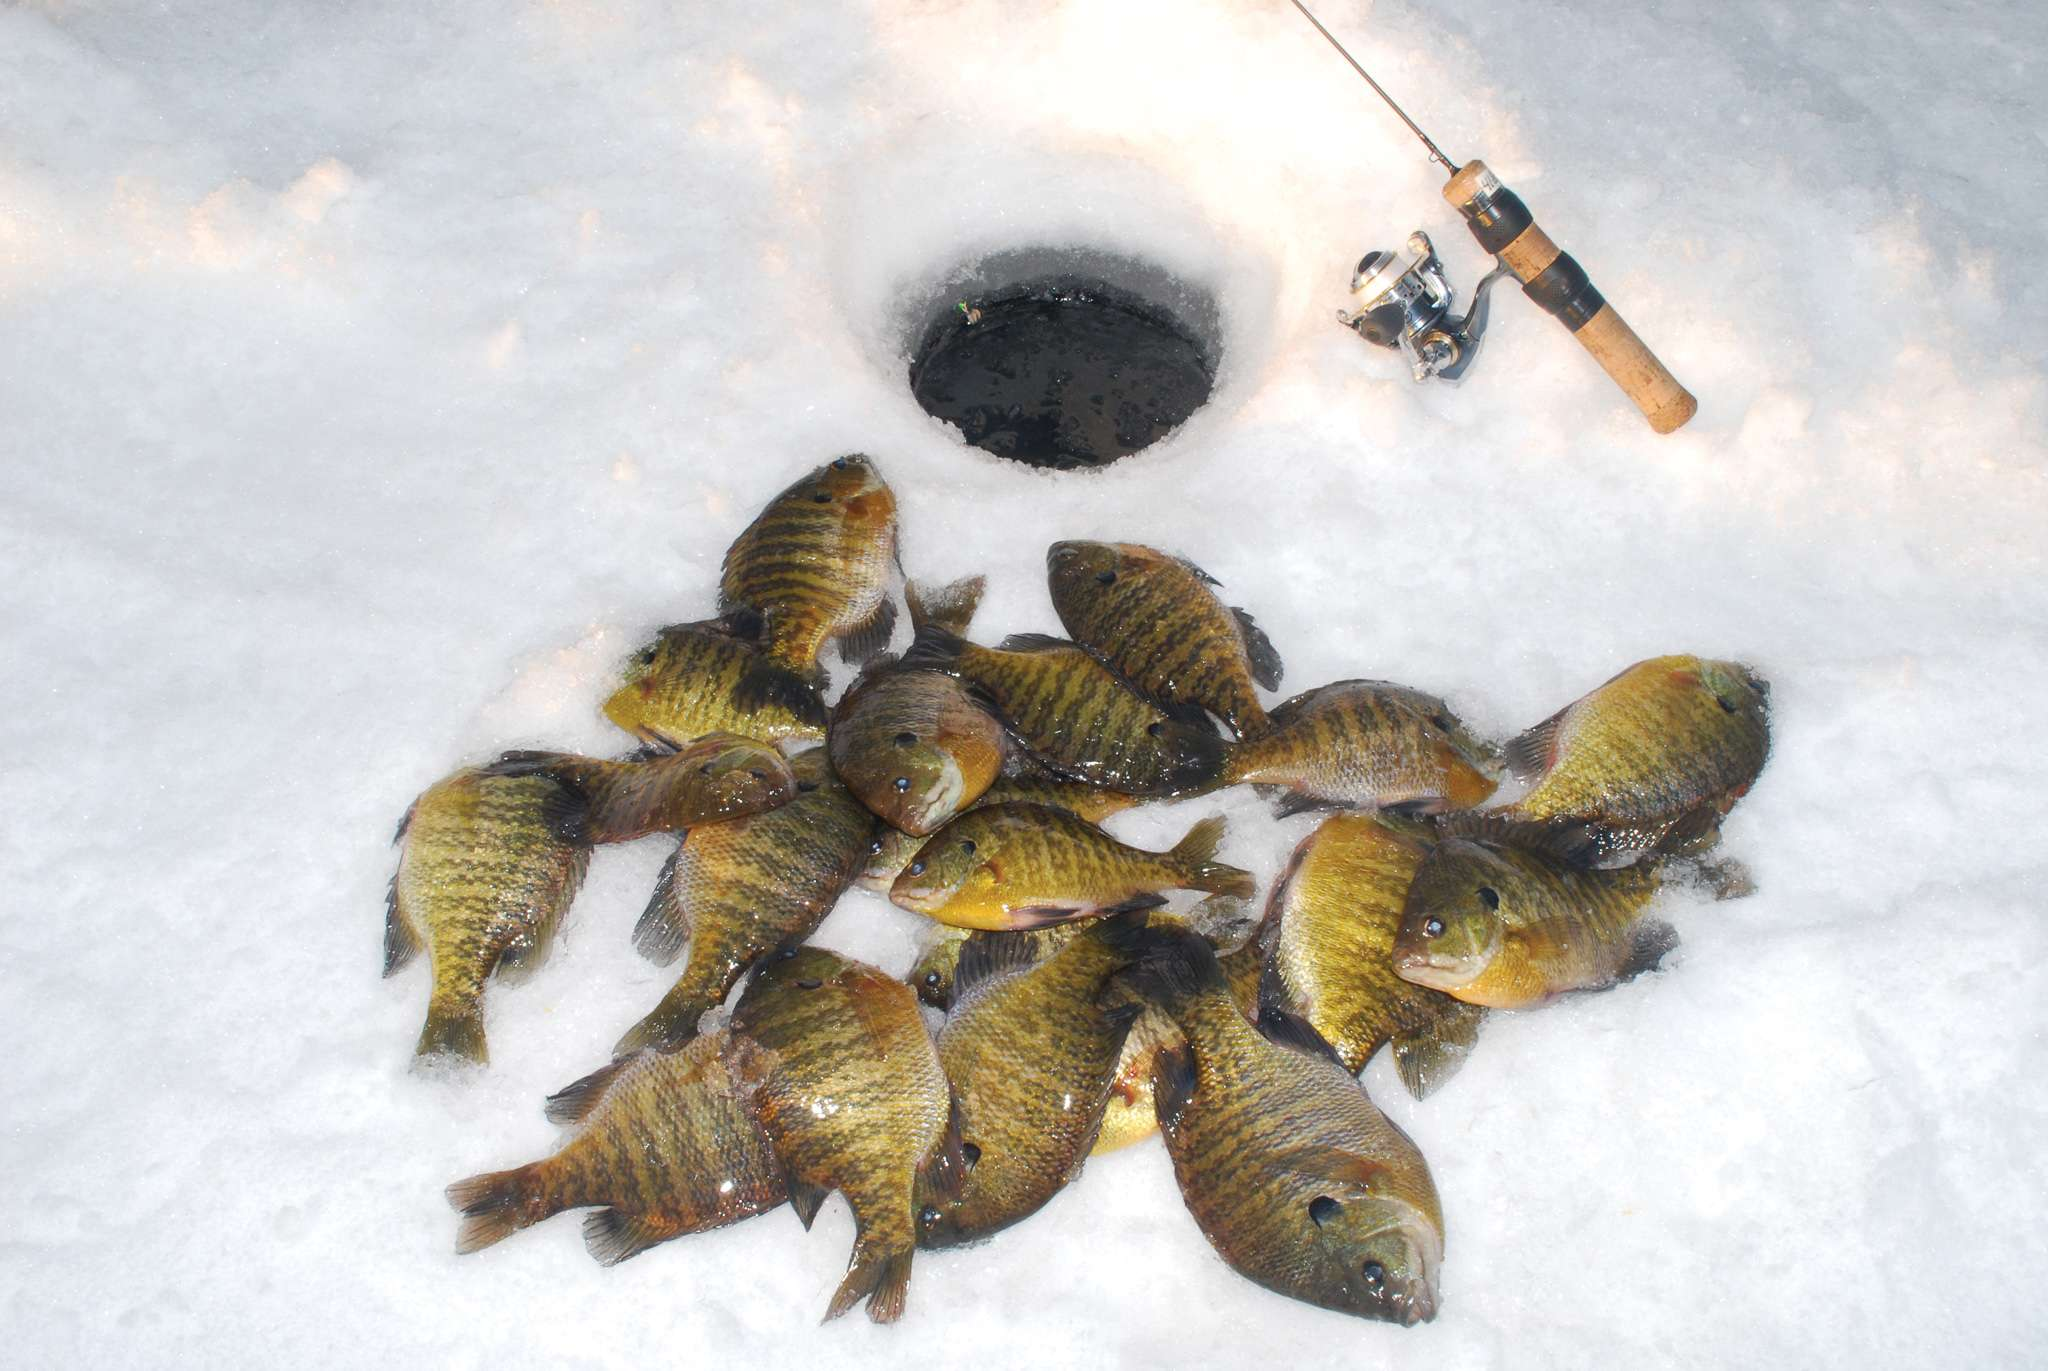 Winter fish